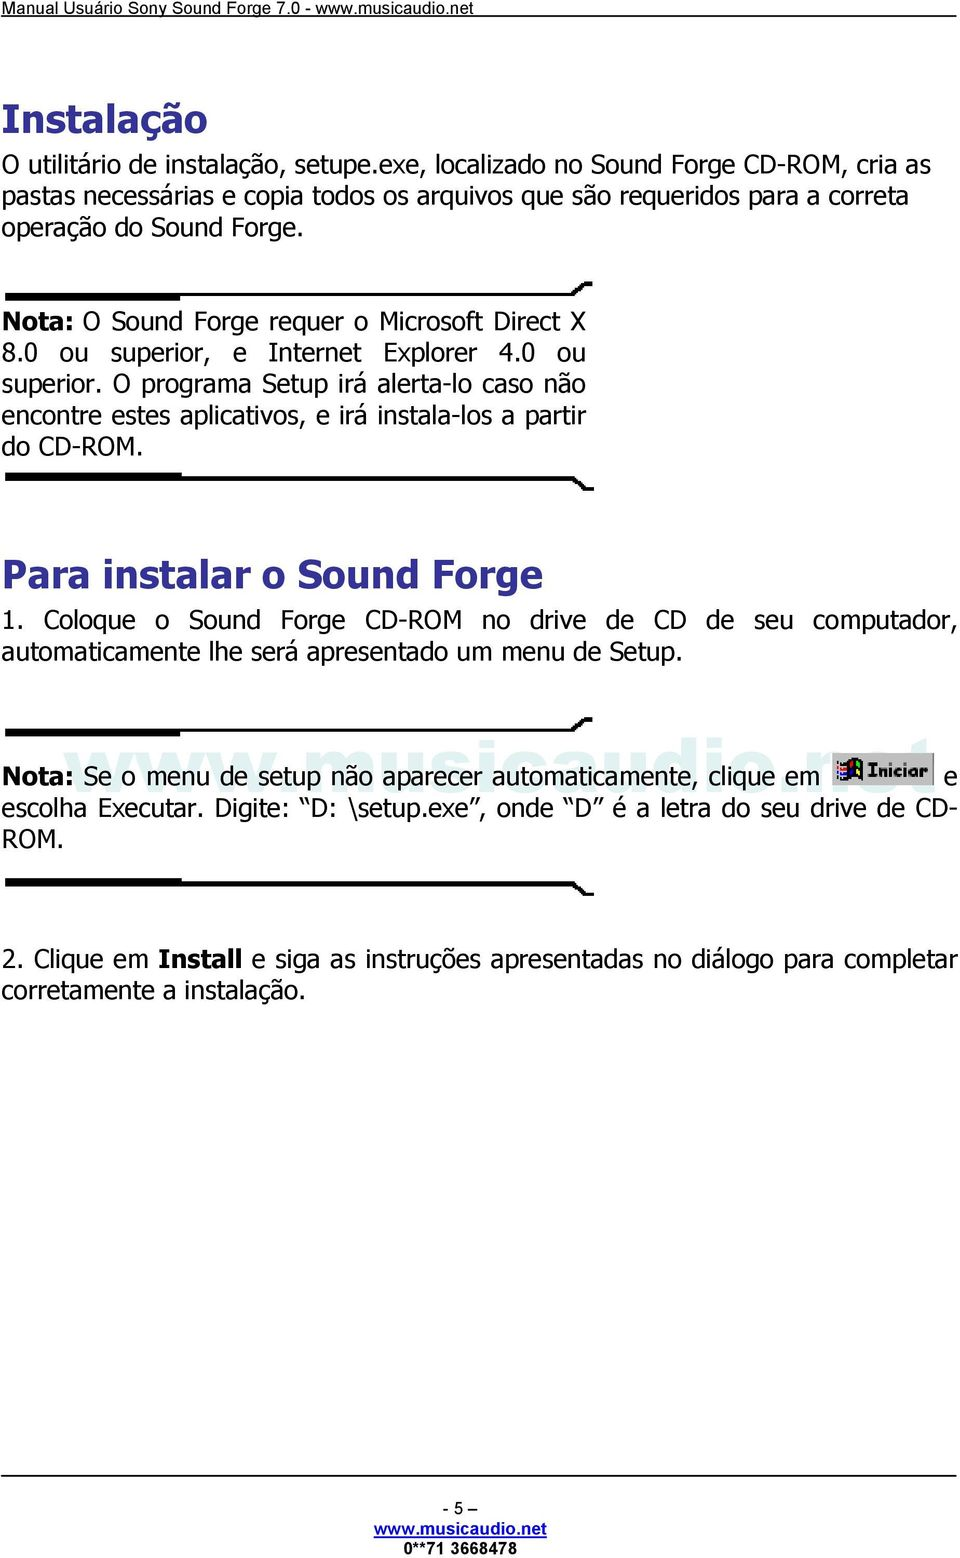 Nota: O Sound Forge requer o Microsoft Direct X 8.0 ou superior, e Internet Explorer 4.0 ou superior. O programa Setup irá alerta-lo caso não encontre estes aplicativos, e irá instala-los a partir do CD-ROM.